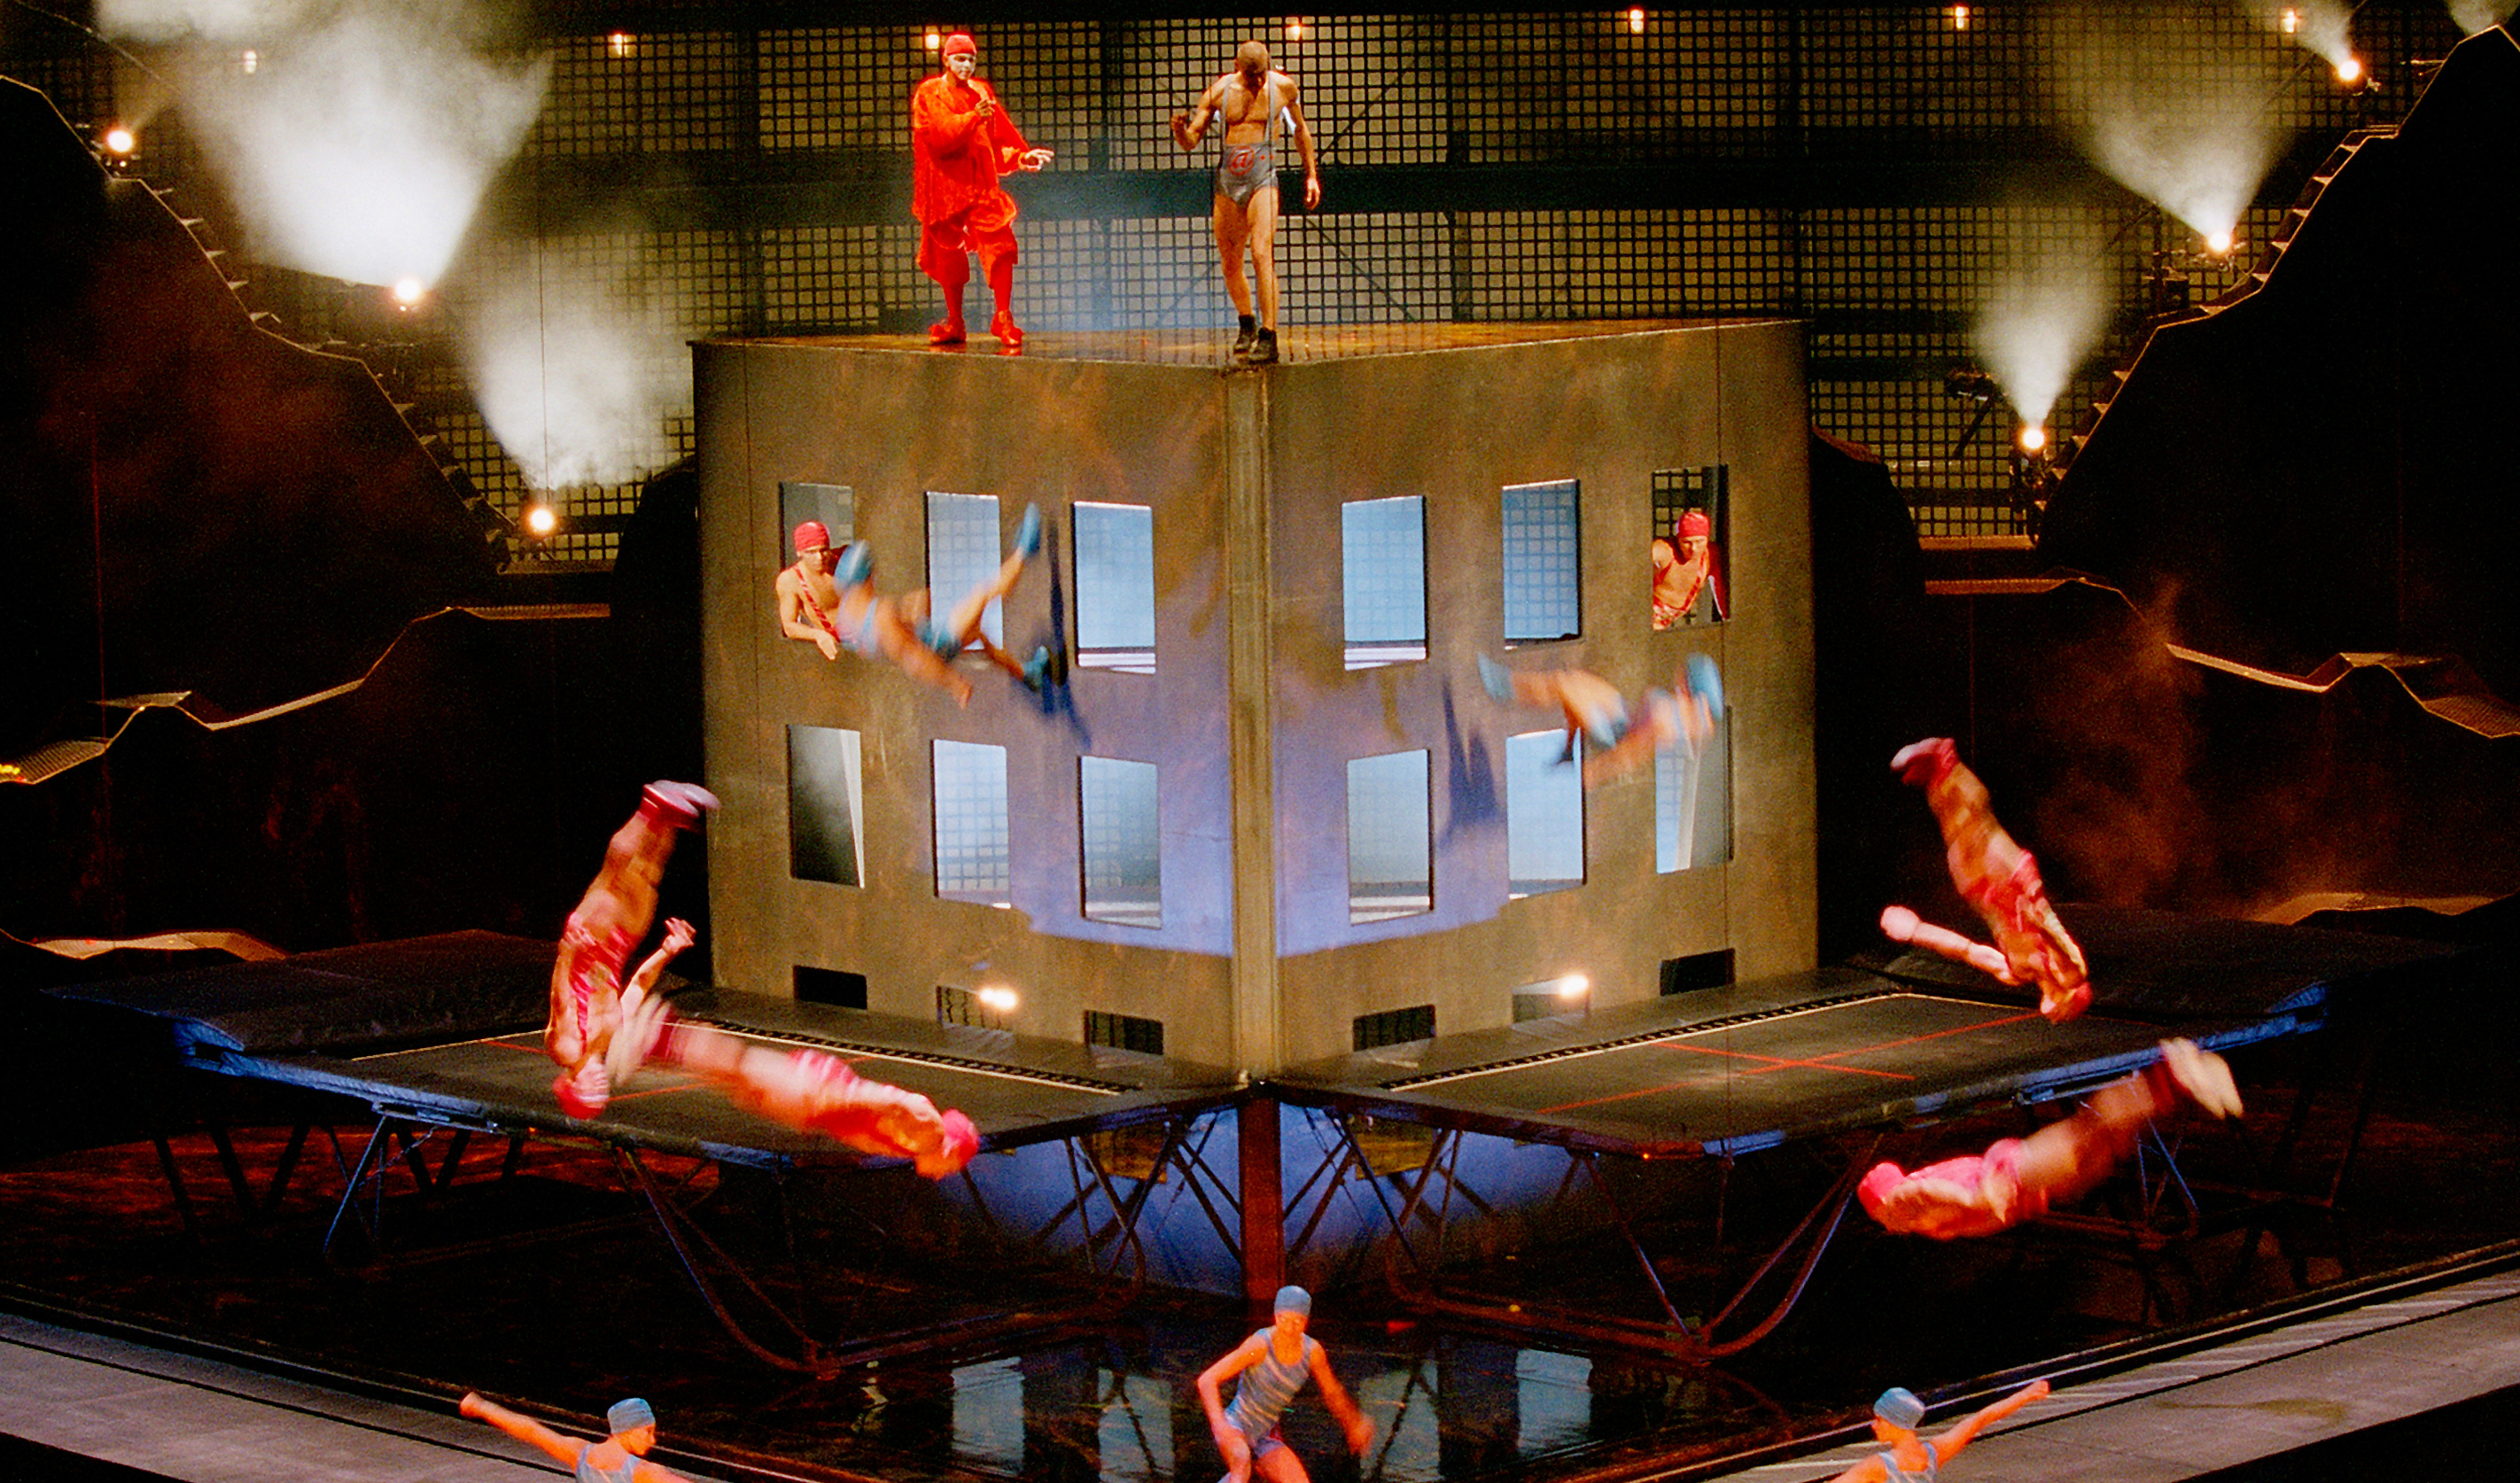 Acrobats performing a show on stage during La Nouba by Cirque du Soleil at the Downtown Disney area